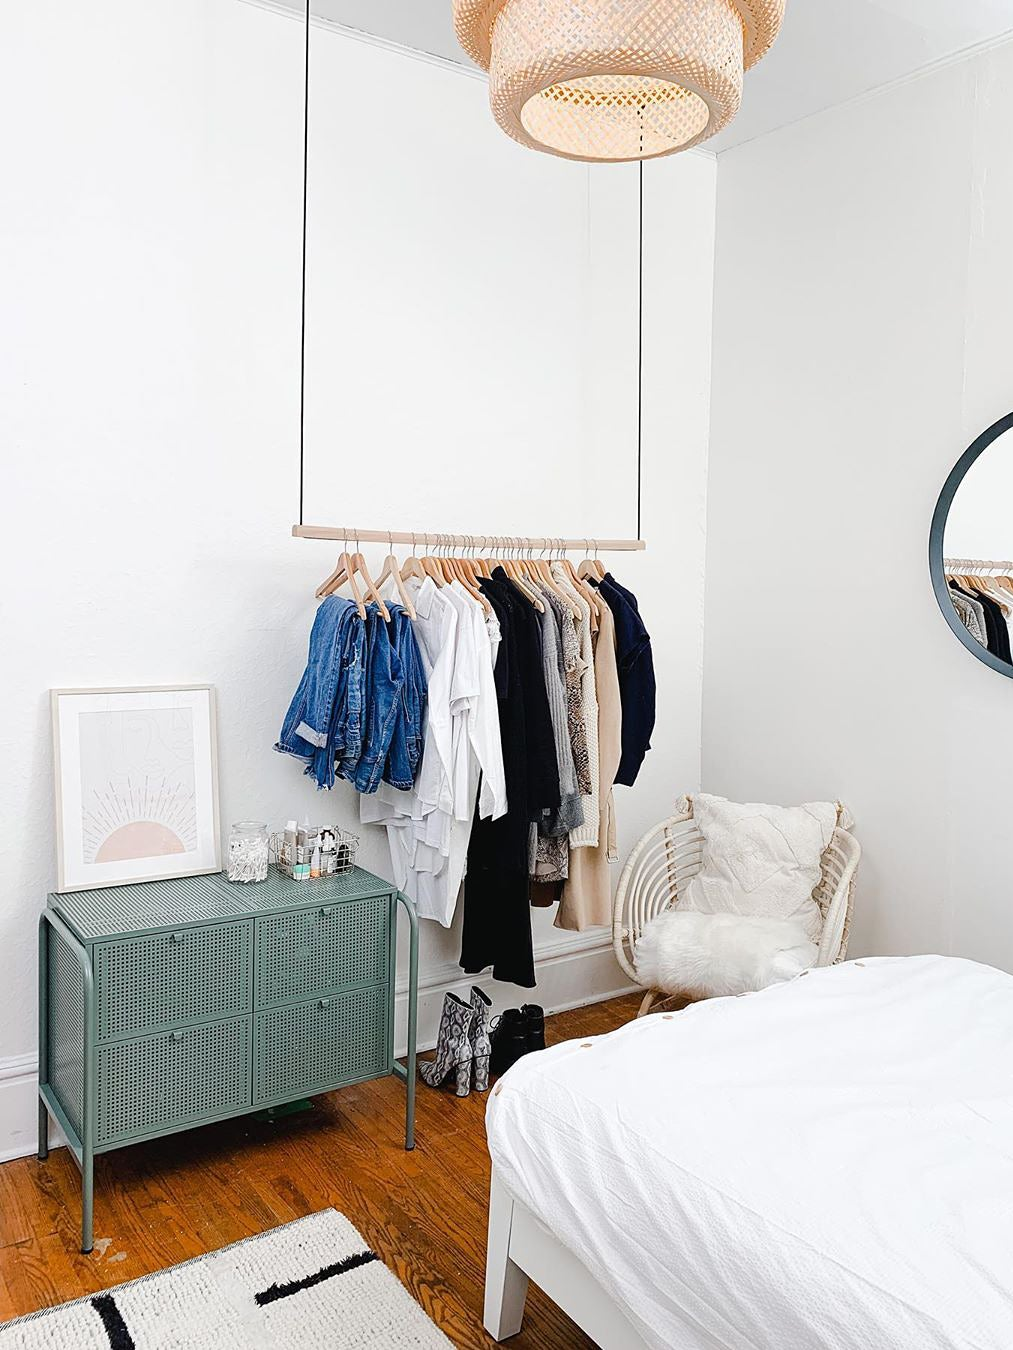 How To Diy A Ceiling Mounted Clothes Rack In 3 Easy Steps